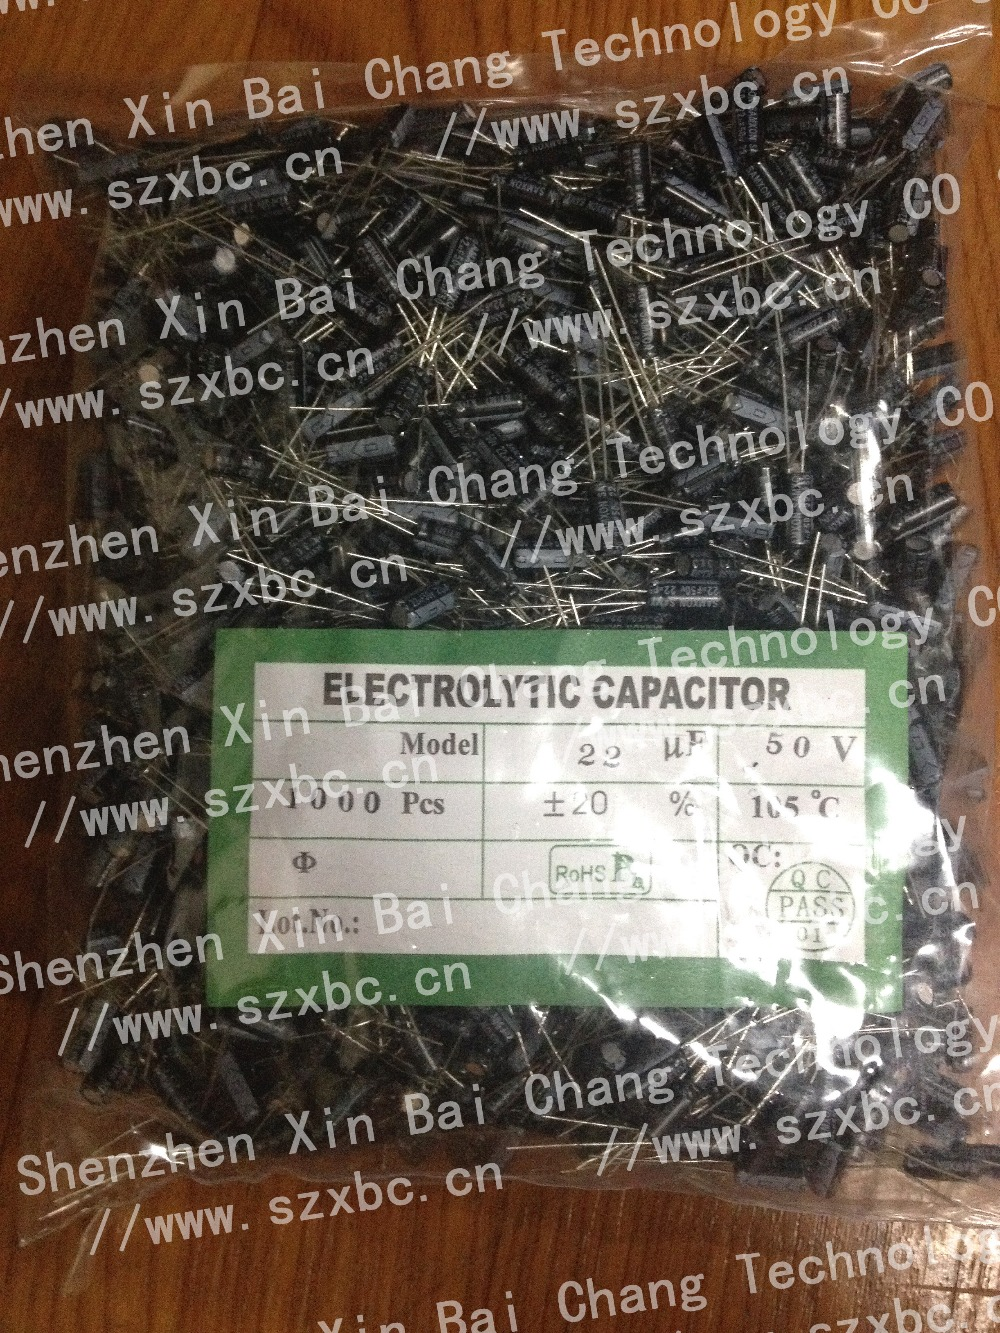 High quality 50V 22uF aluminium electrolytic capacitor with RoHs